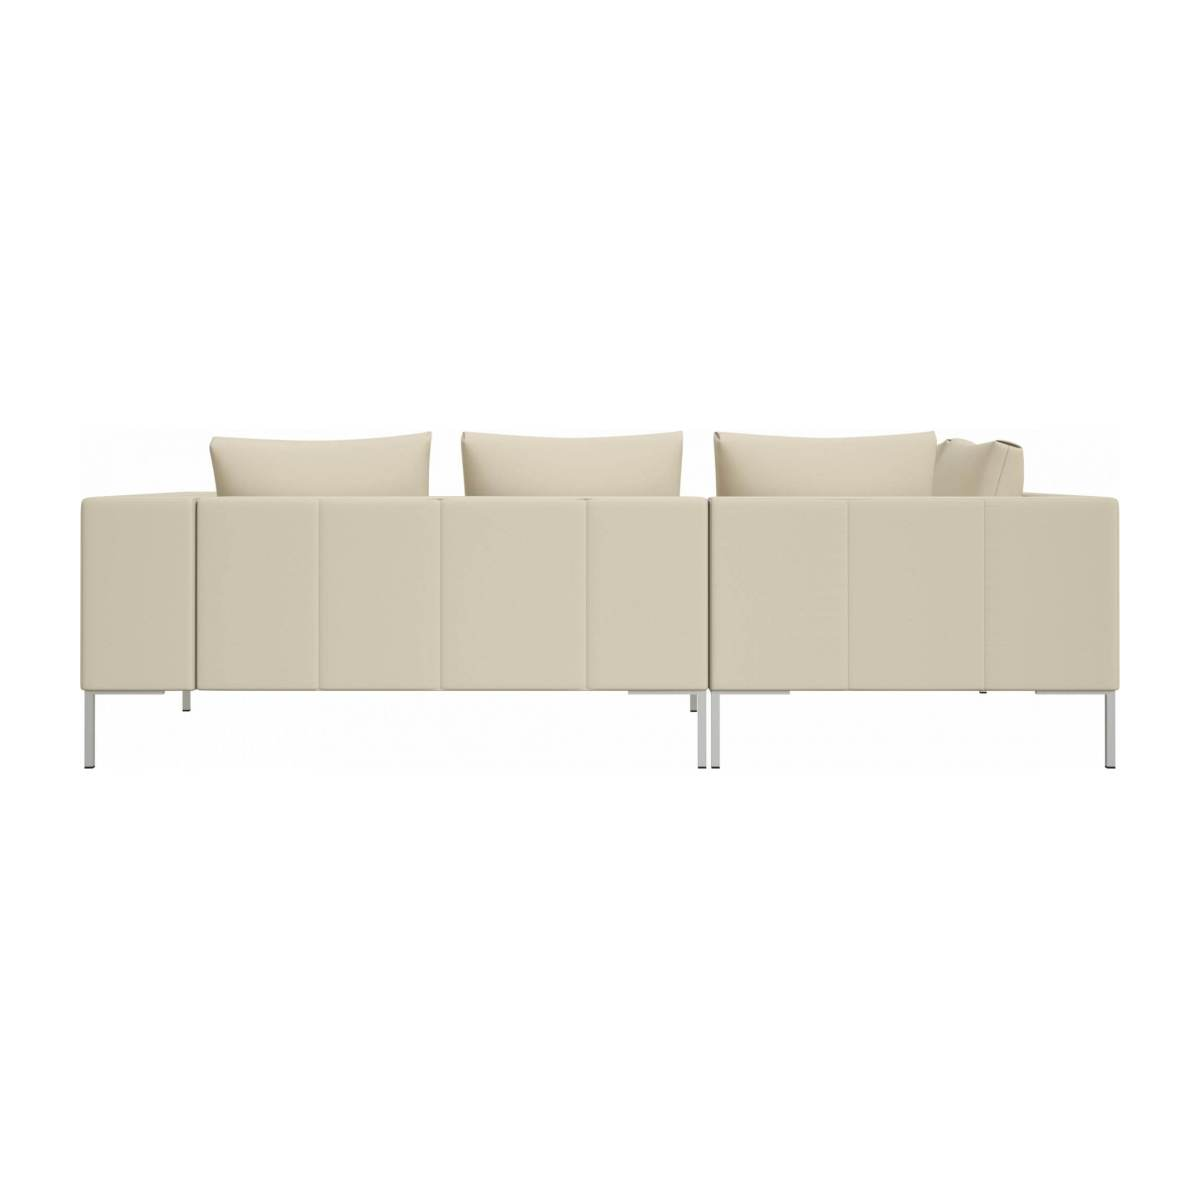 2 seater sofa with chaise longue on the left in Savoy semi-aniline leather, off white  n°3